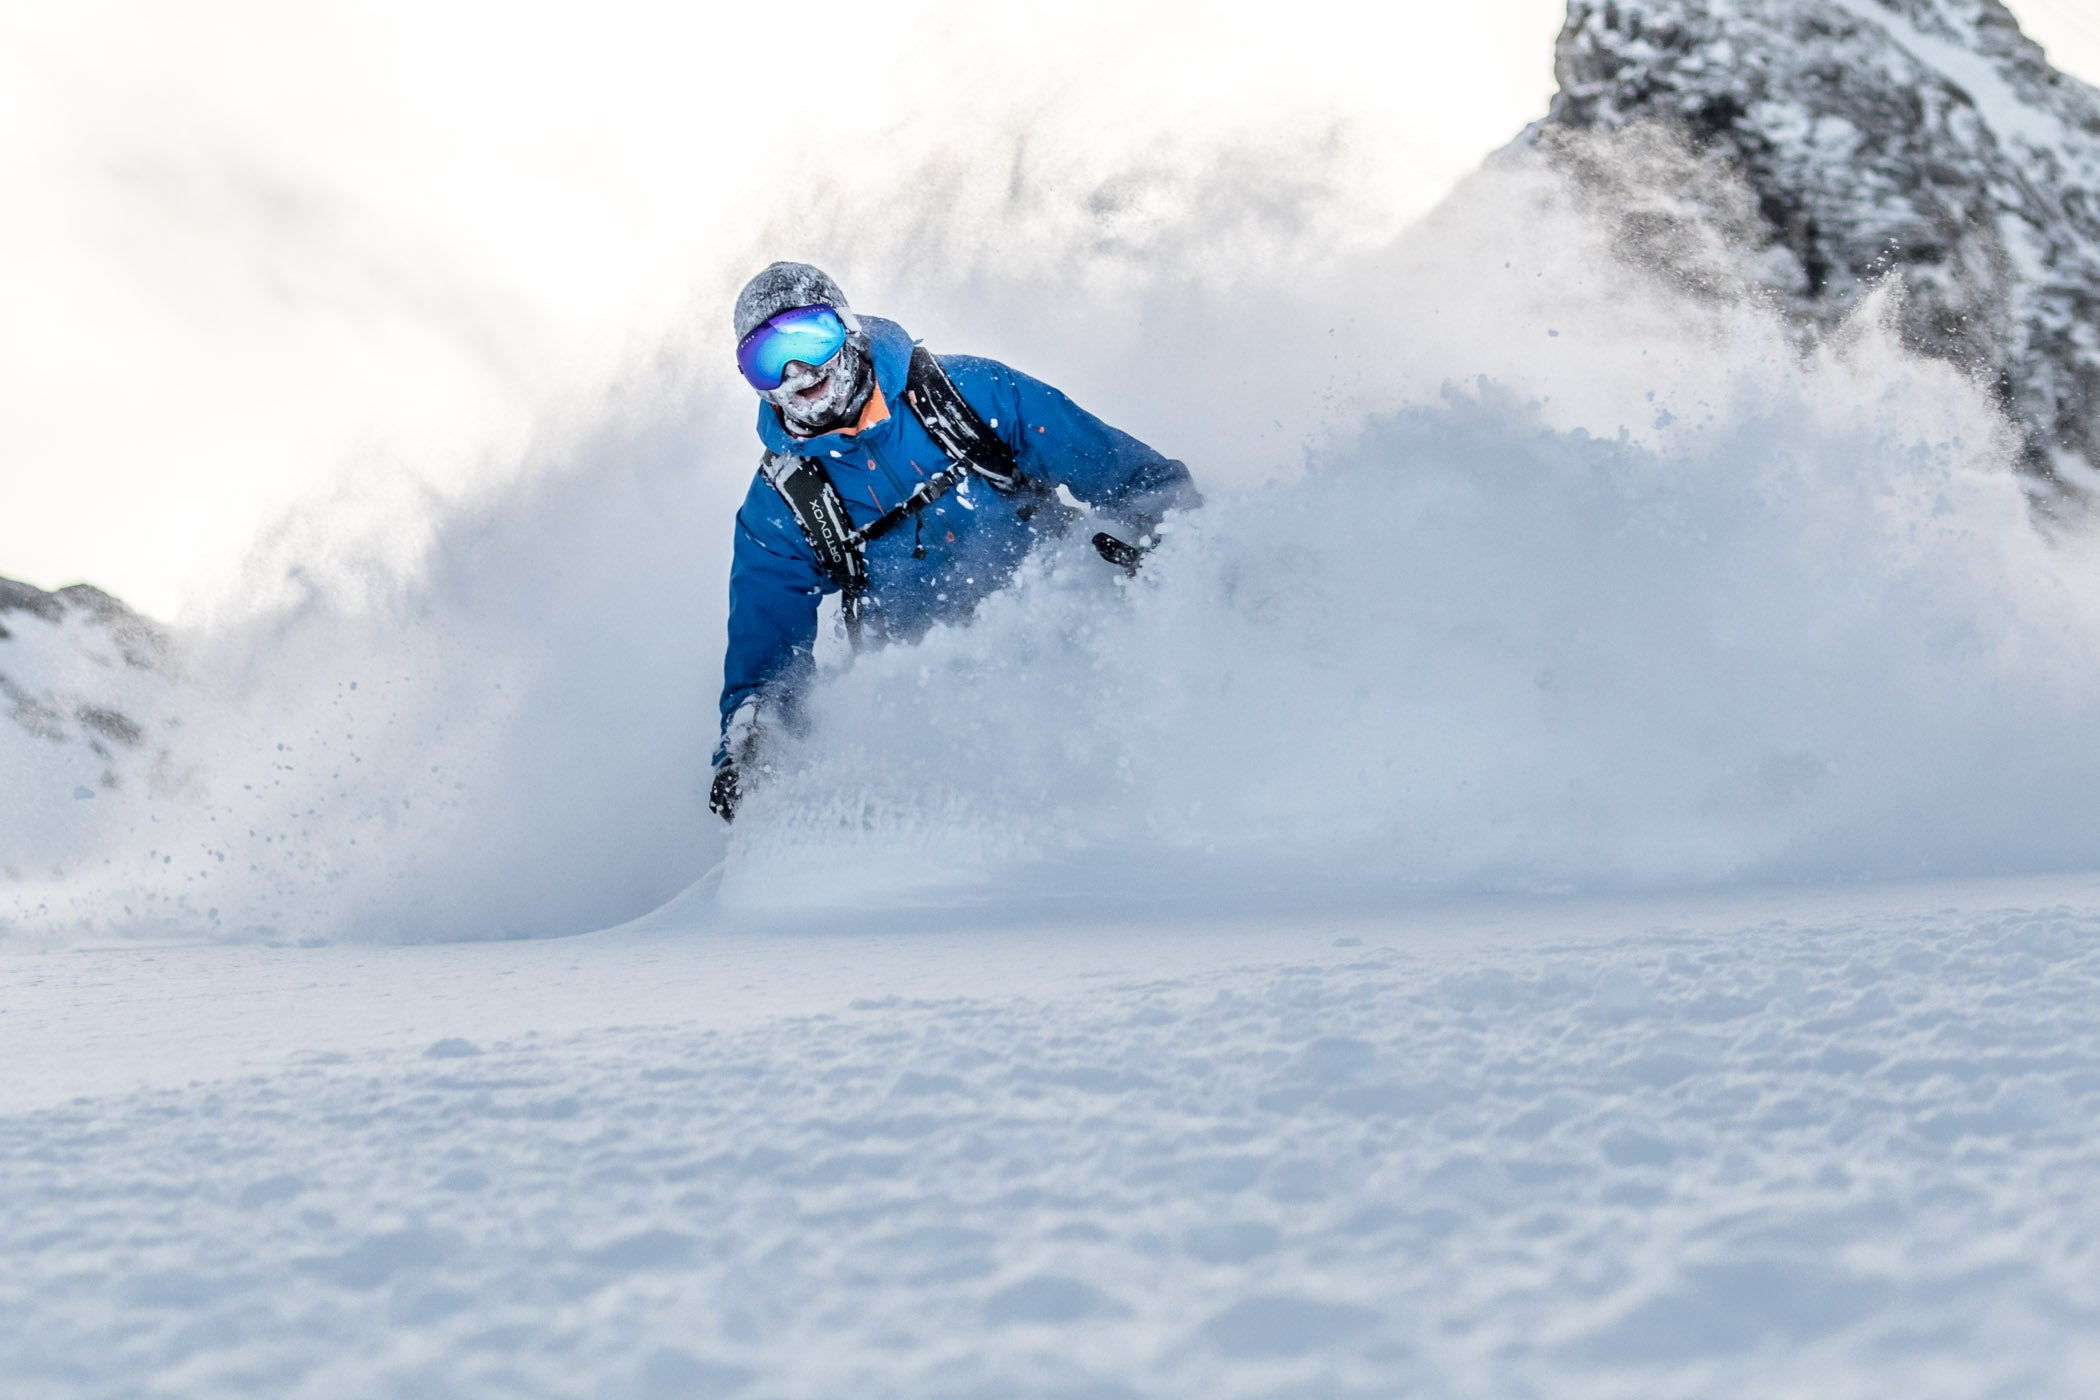 The secret to Ski Photography